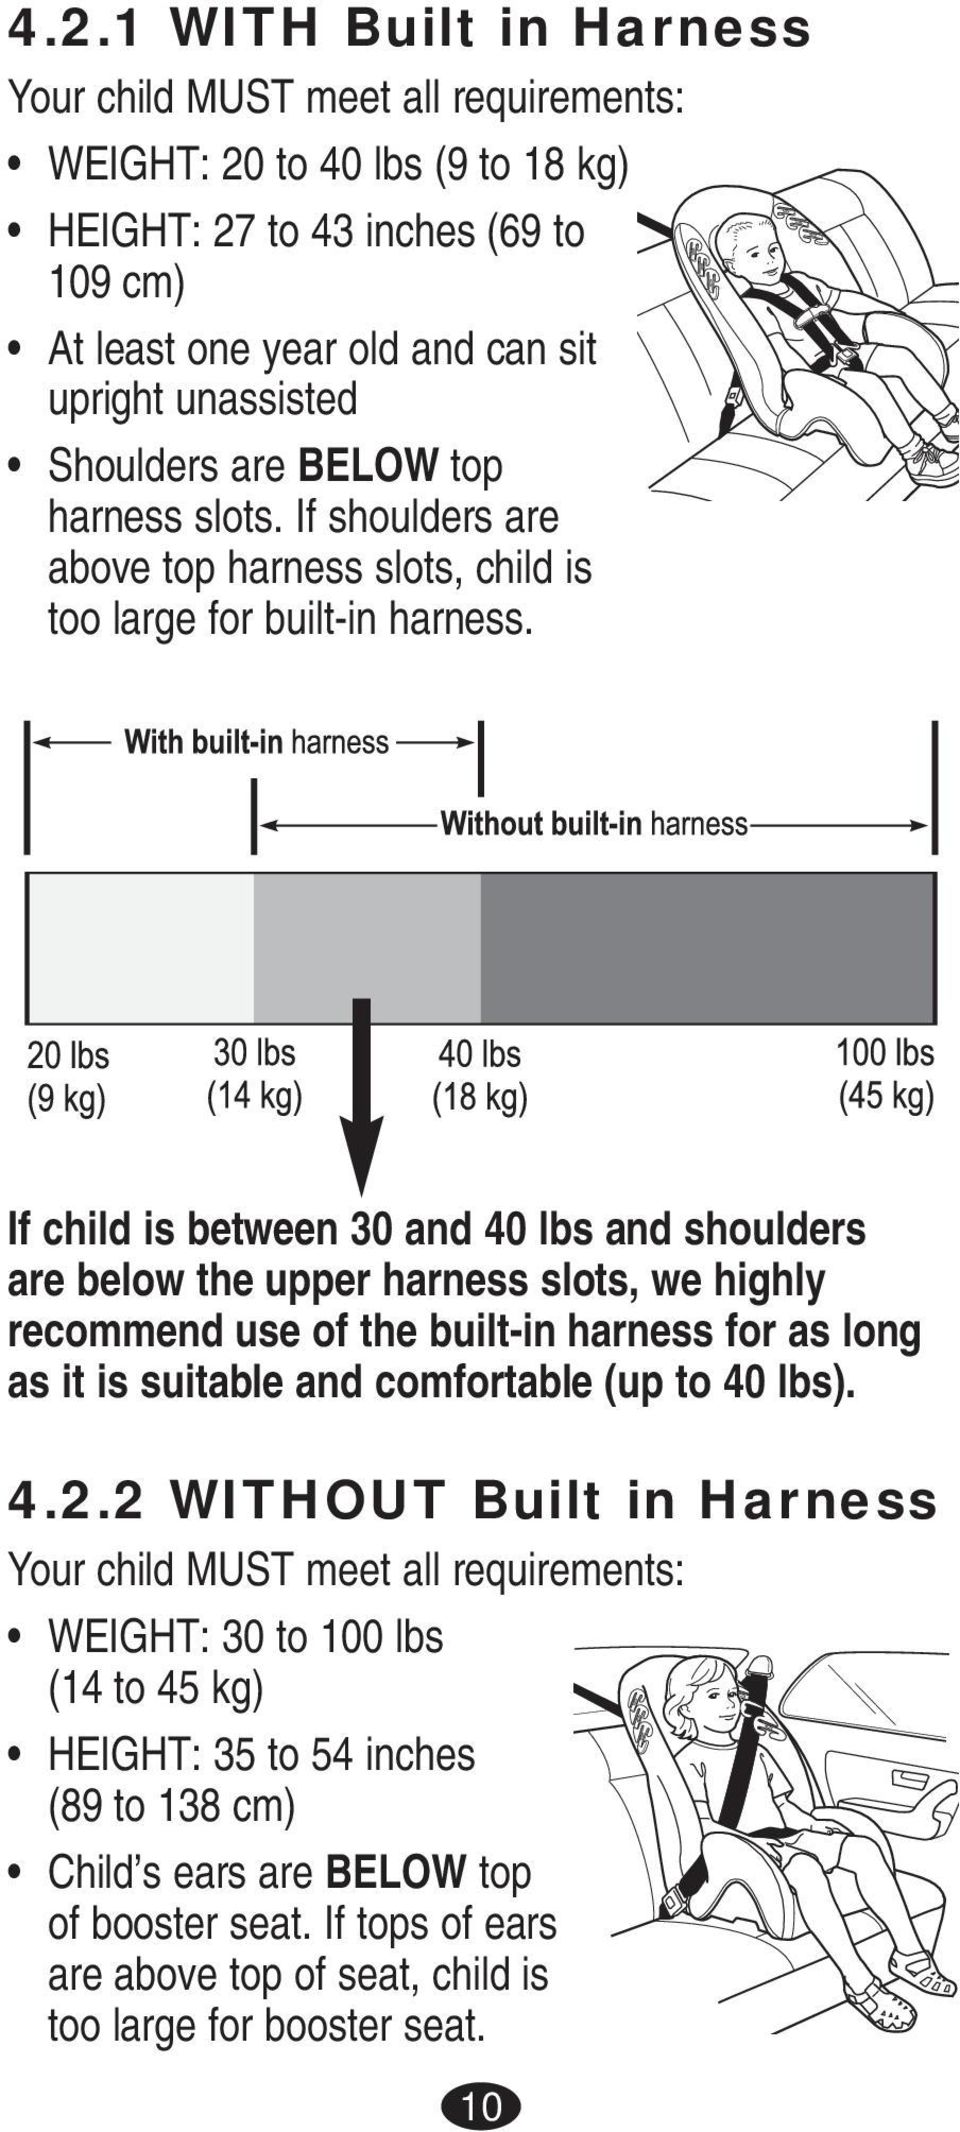 If child is between 30 and 40 lbs and shoulders are below the upper harness slots, we highly recommend use of the built-in harness for as long as it is suitable and comfortable (up to 40 lbs).